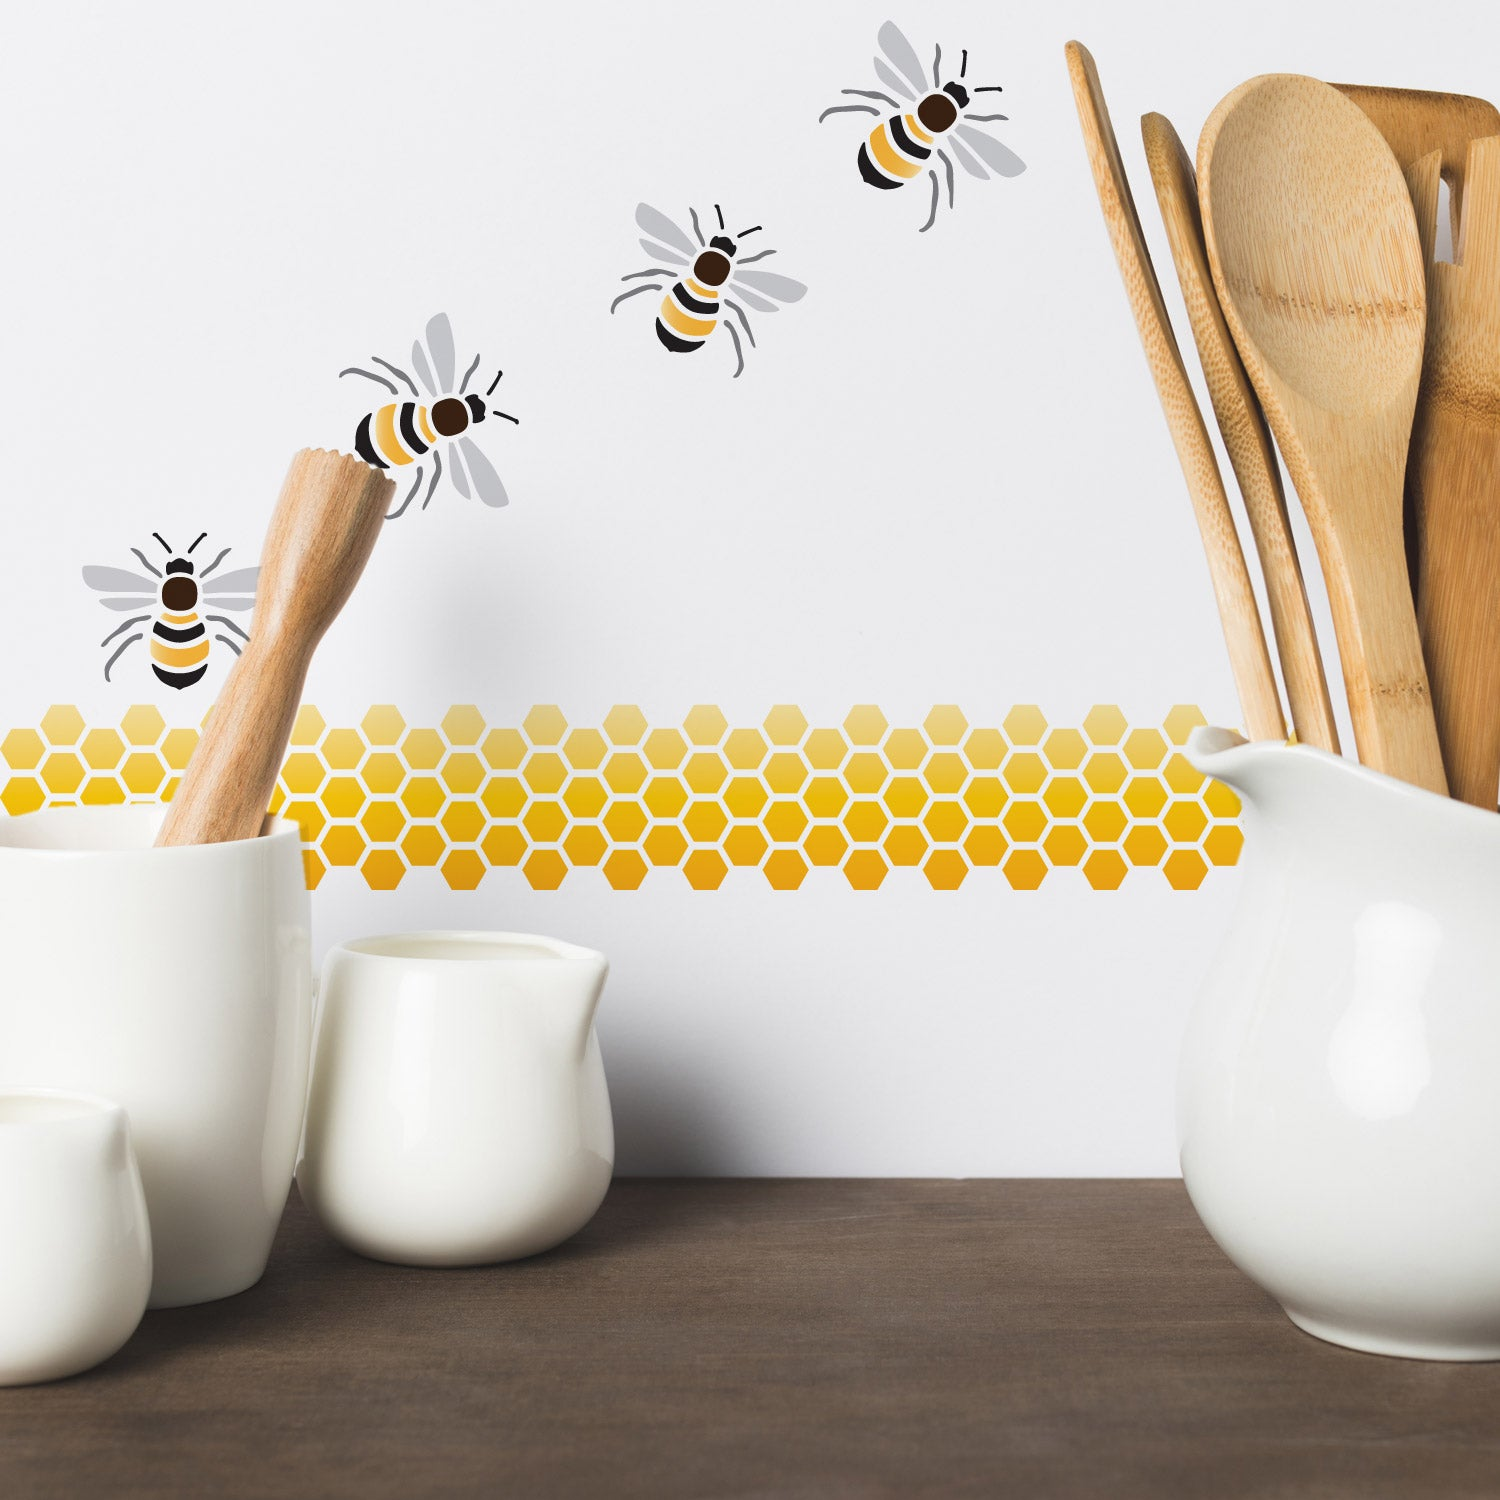 CraftStar Bee and Honeycomb Stencil Set on Wall